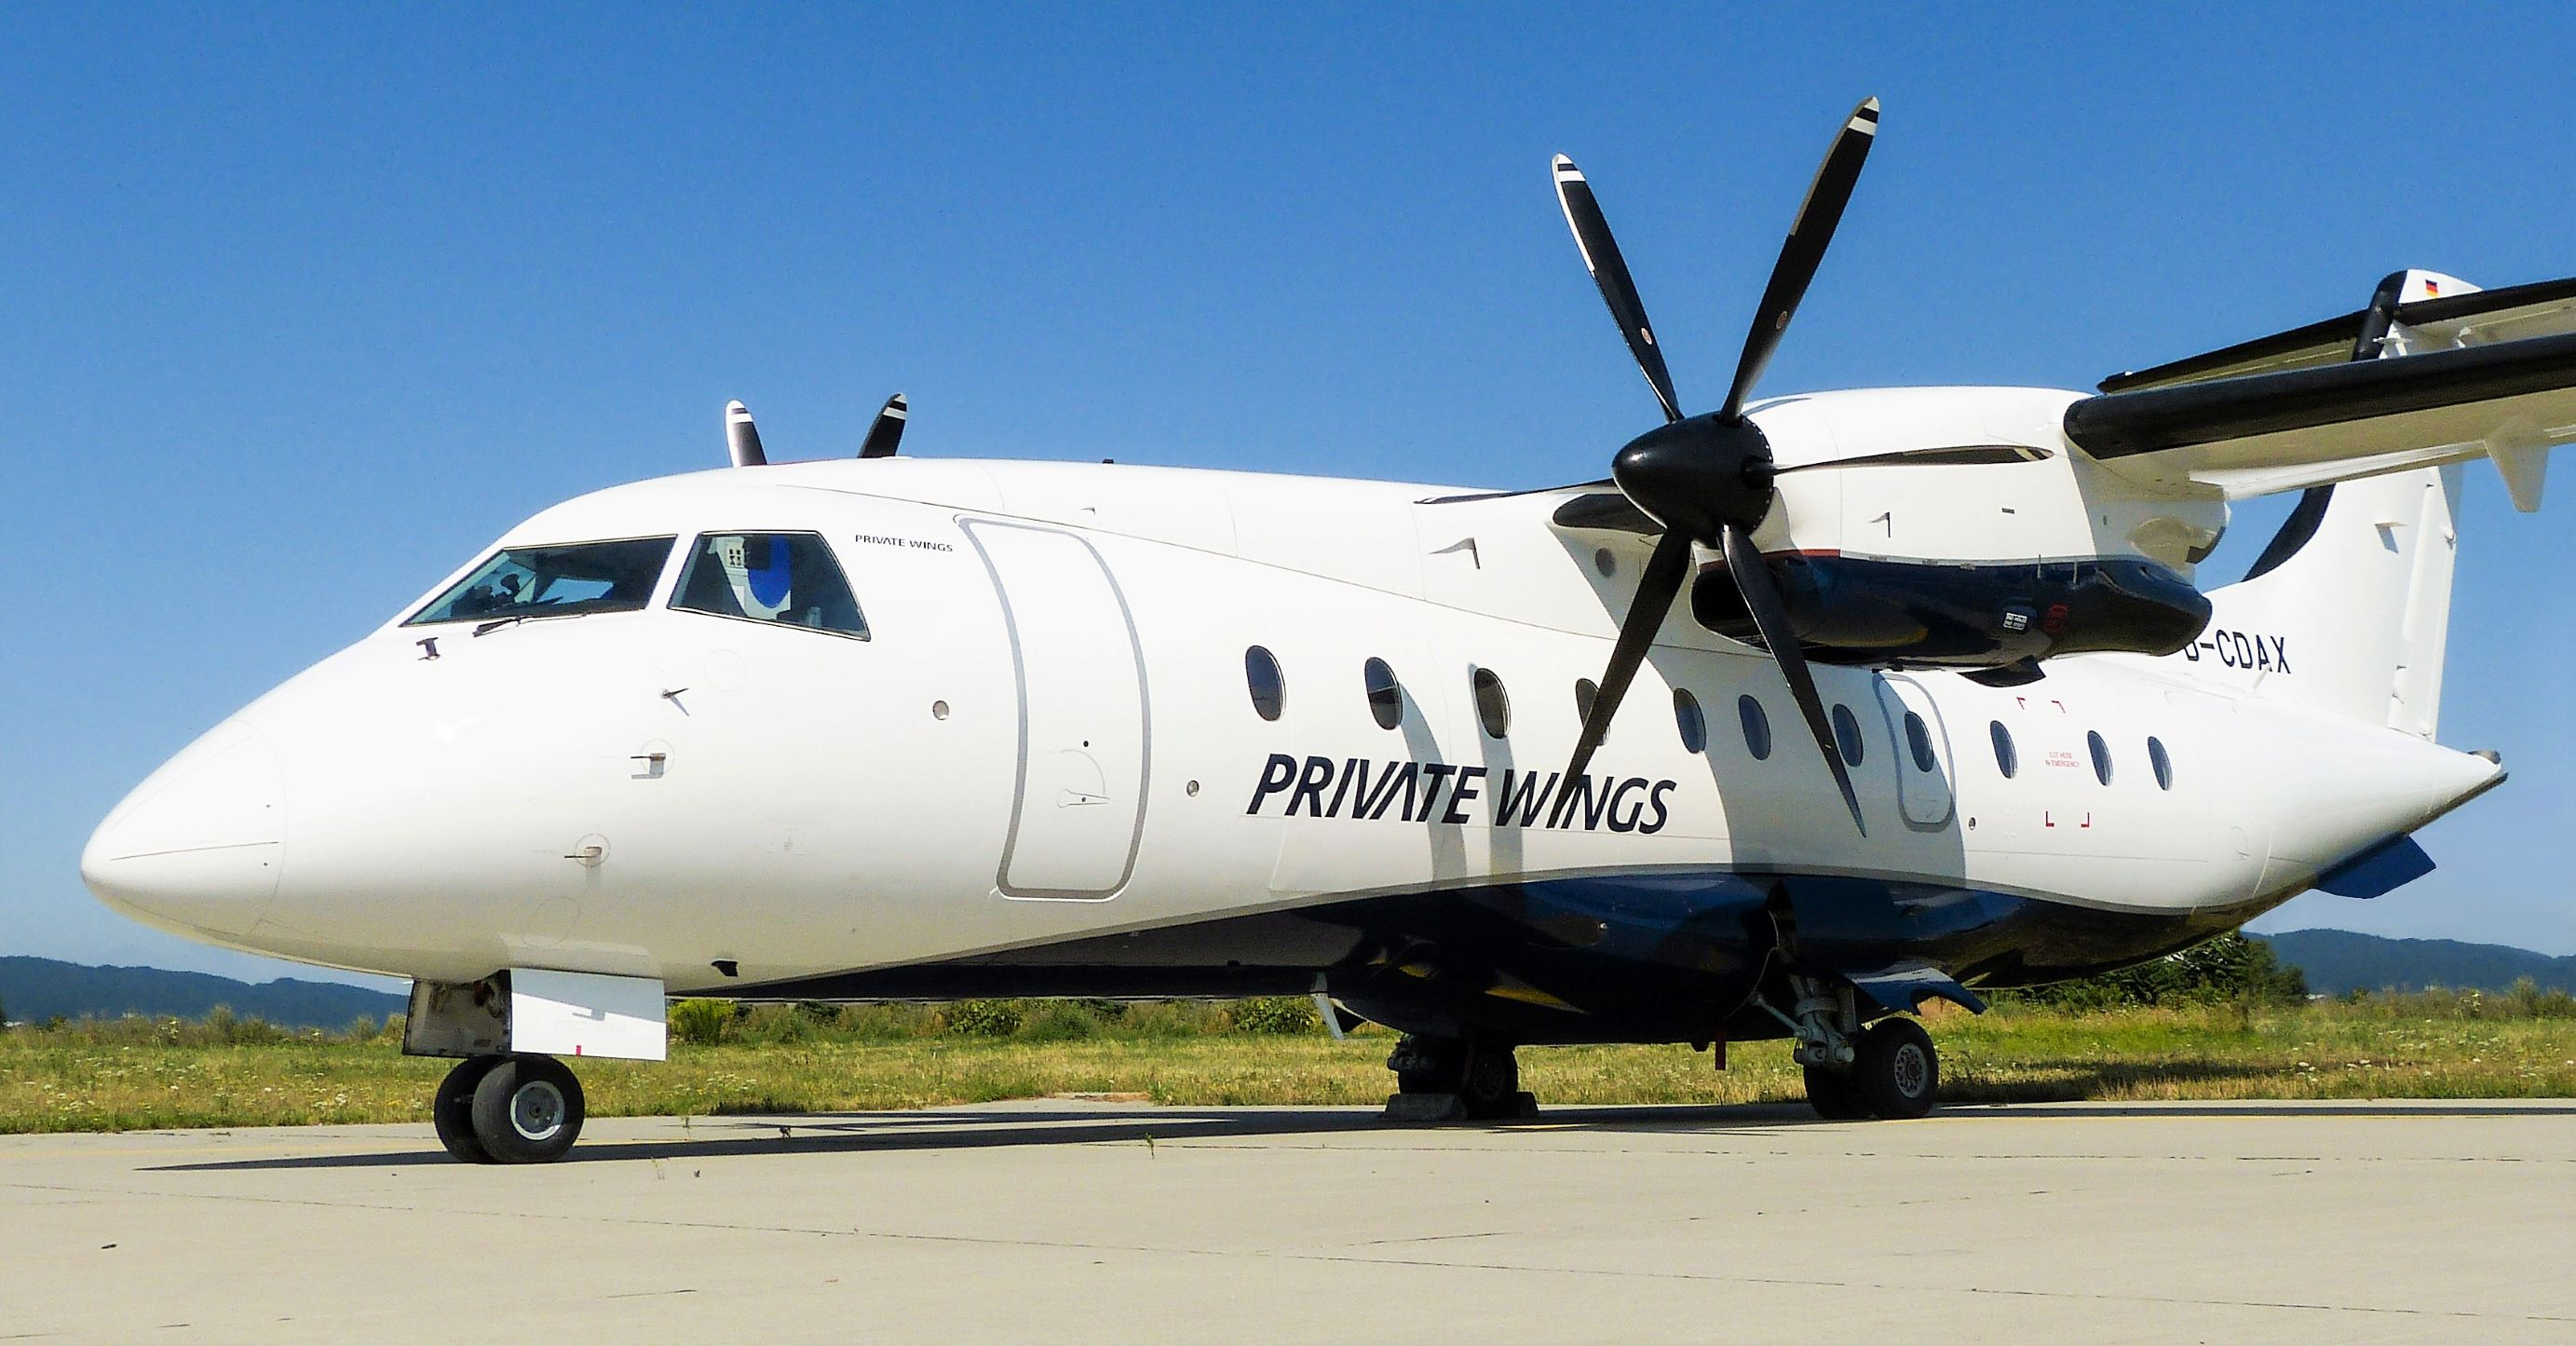 Private Wings Dornier 328-100 in the new livery